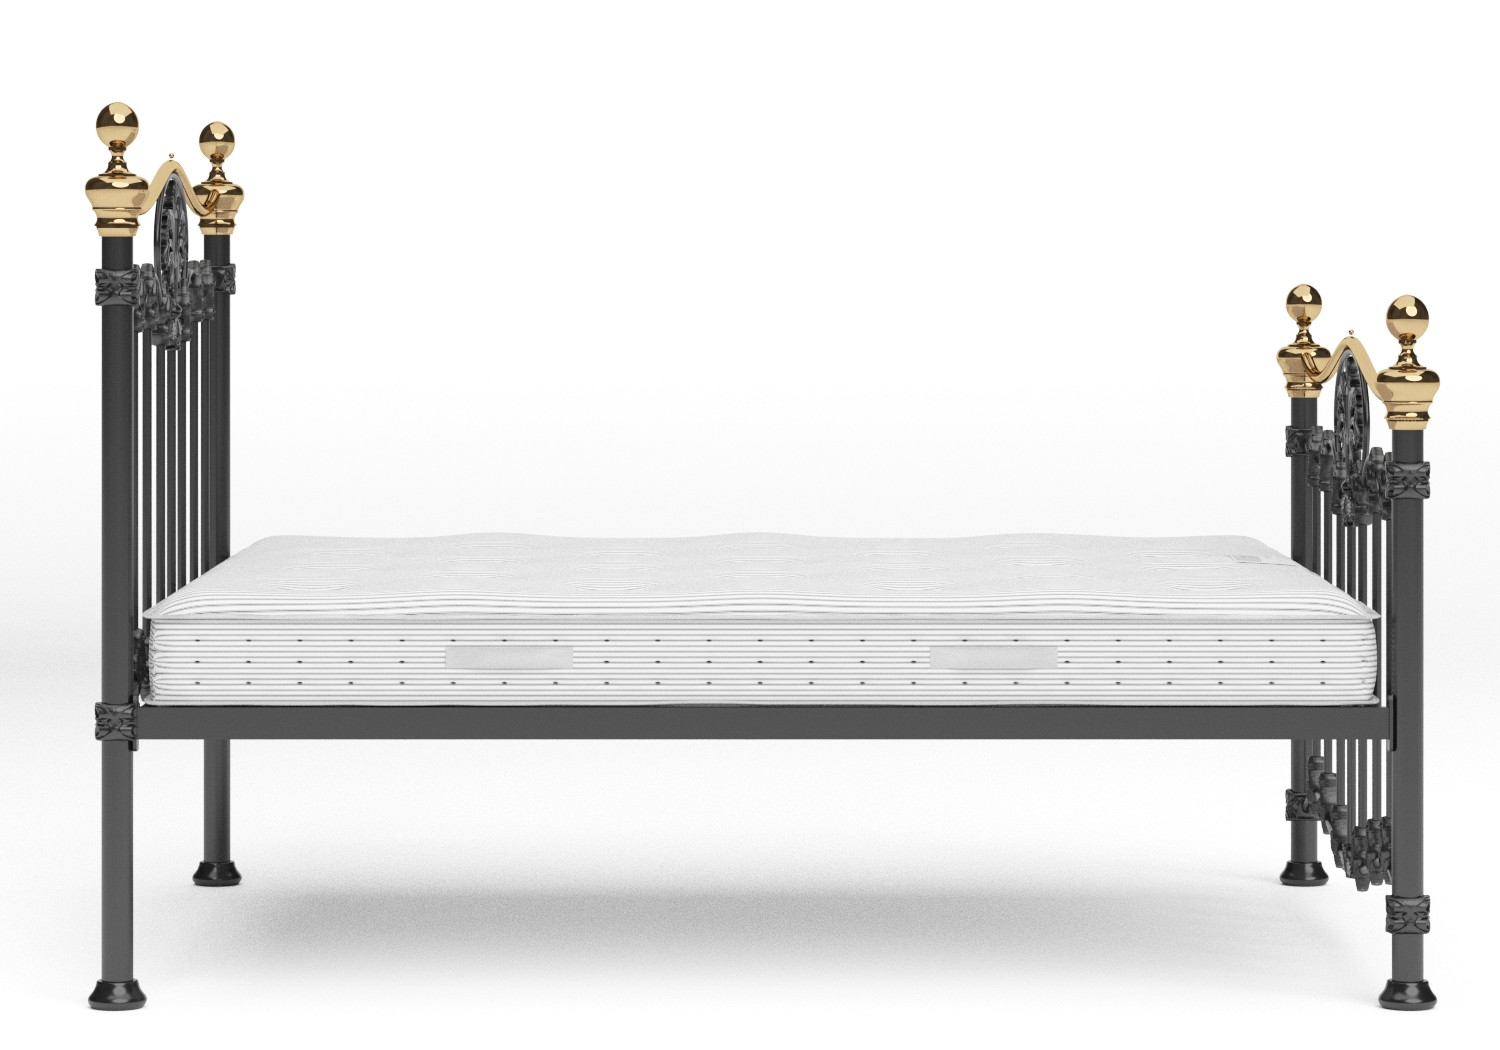 Camolin Iron/Metal Bed in Satin Black with Brass details shown with Juno 1 mattress